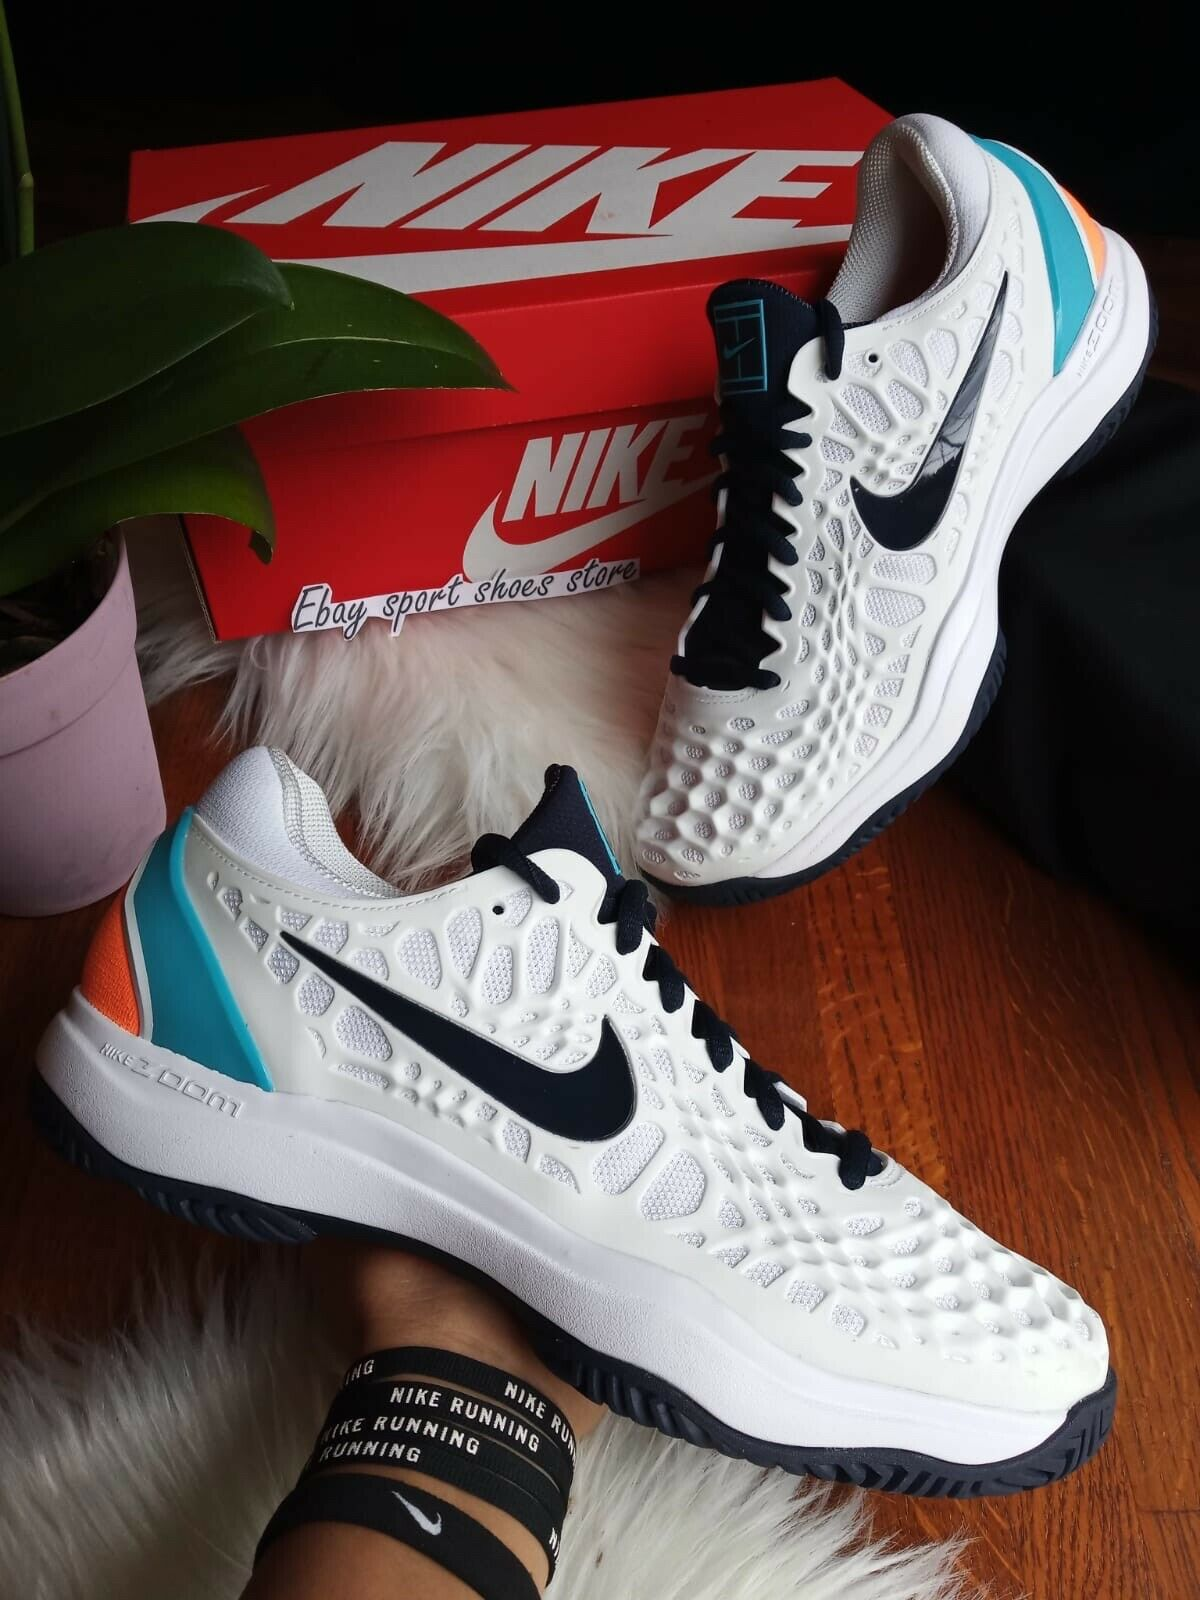 Taille 9 Homme NIKE AIR ZOOM CAGE 3 noir blanc 918193 104 chaussures de Tennis